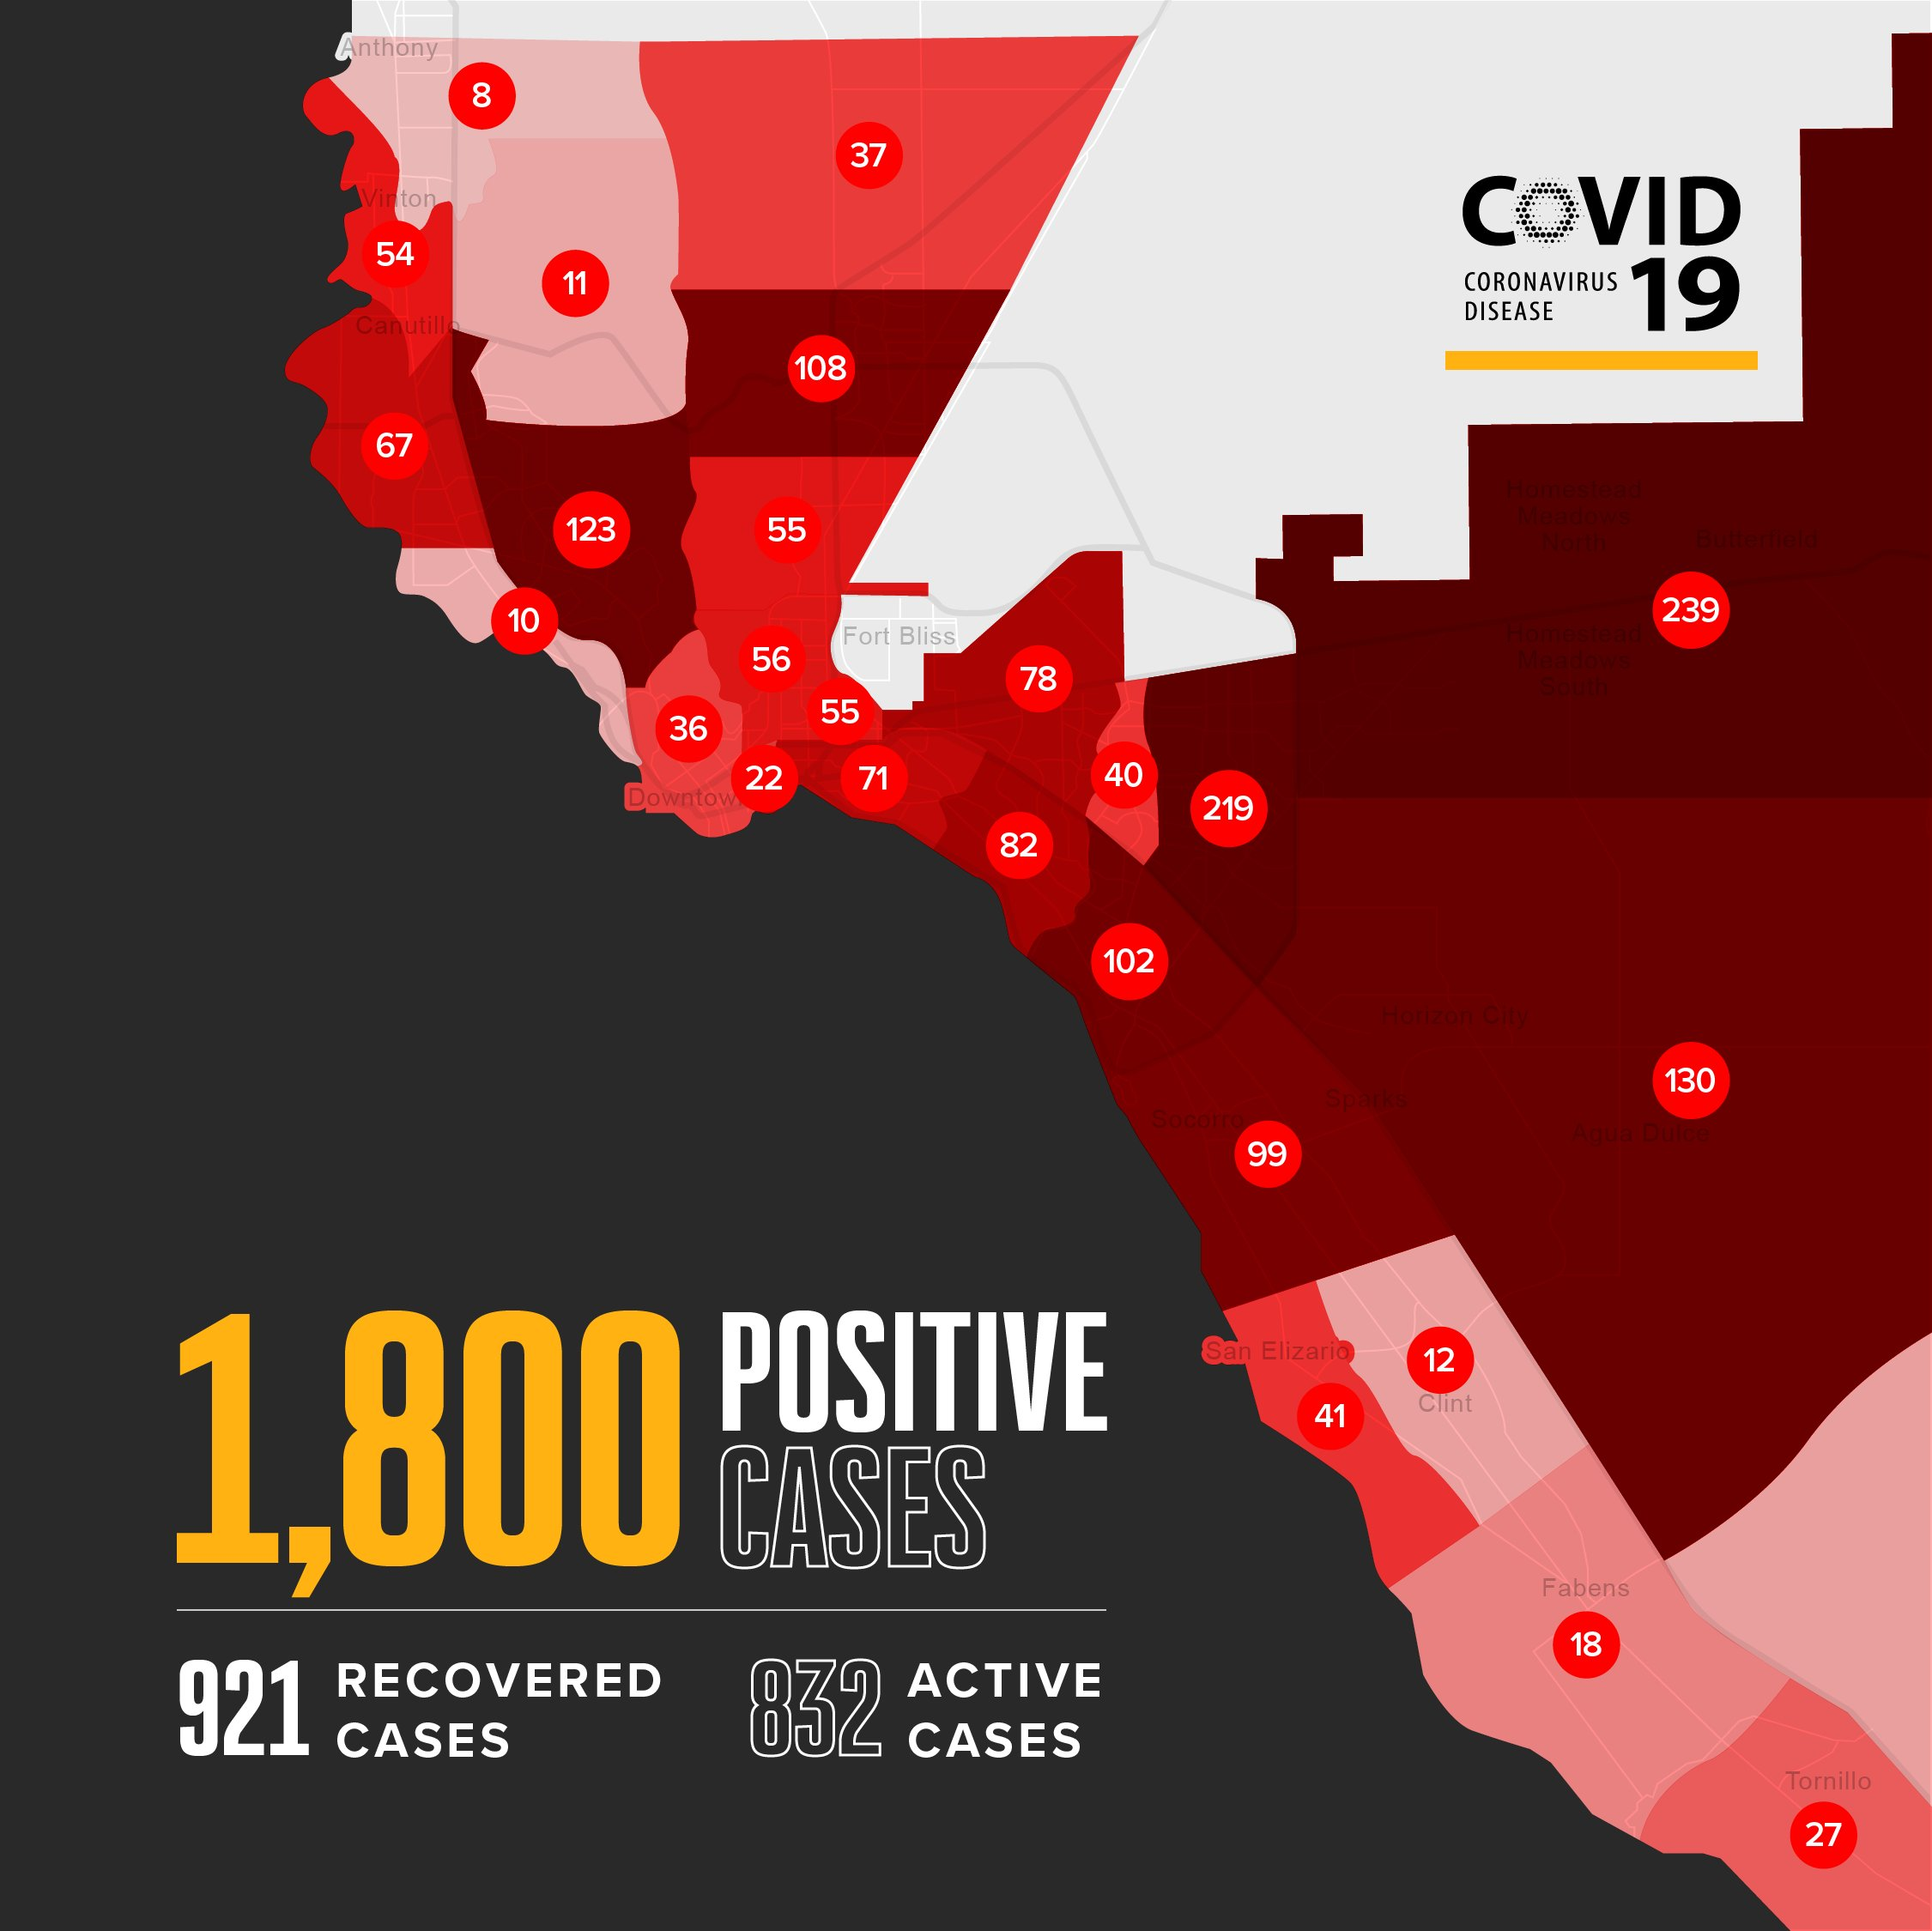 The map above shows the amount of positive COVID-19 cases by ZIP codes and the number of cases in parenthesis: 79821 (8), 79835 (54), 79836 (12), 79838 (18), 79849 (41), 79853 (27), 79901 (22), 79902 (36), 79903 (55), 79904 (55), 79905 (71), 79907 (102), 79911 (11), 79912 (123), 79915 (82), 79922 (10), 79924 (108), 79925 (78), 79927 (99), 79928 (130), 79930 (56), 79932 (67), 79934 (37), 79935 (40), 79936 (219), 79938 (239)